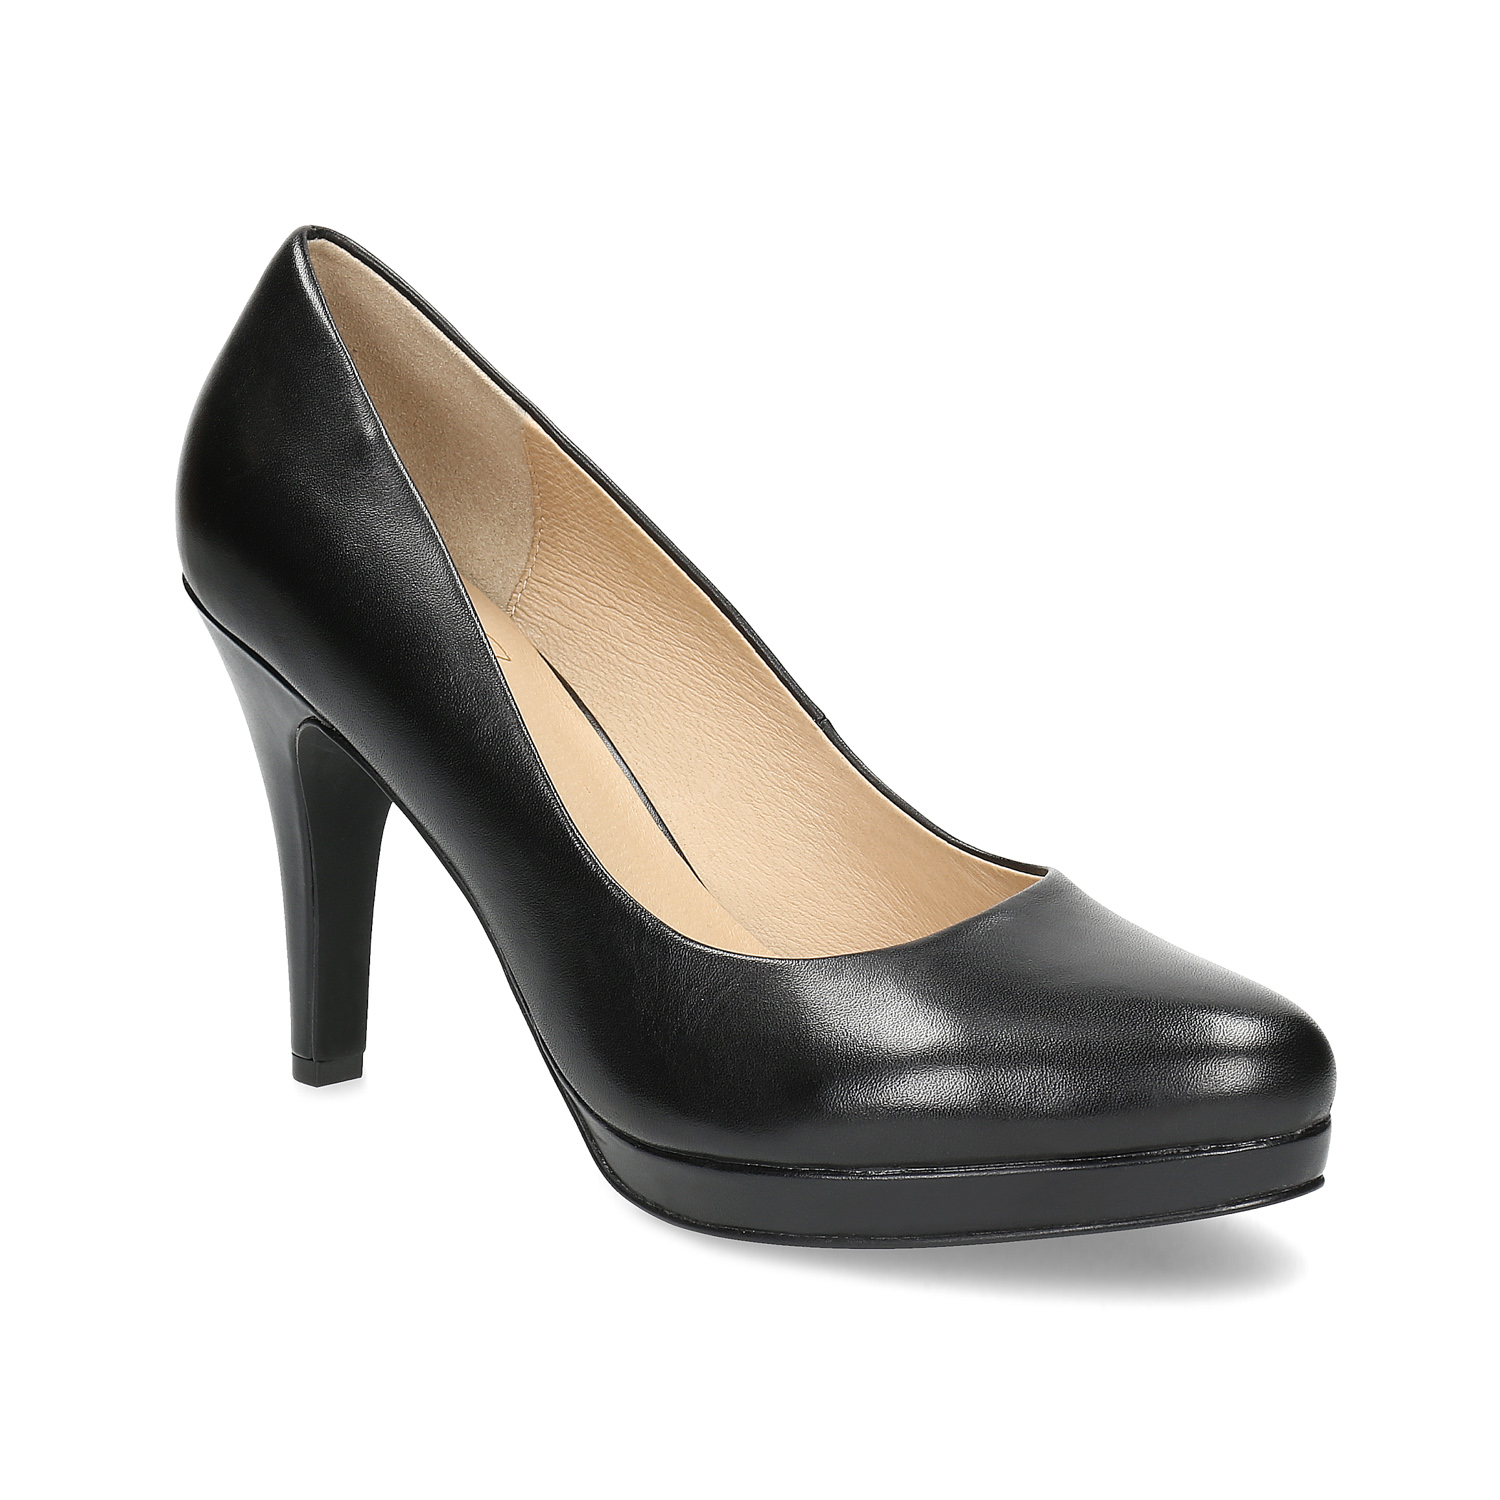 Insolia Black leather pumps - All Shoes